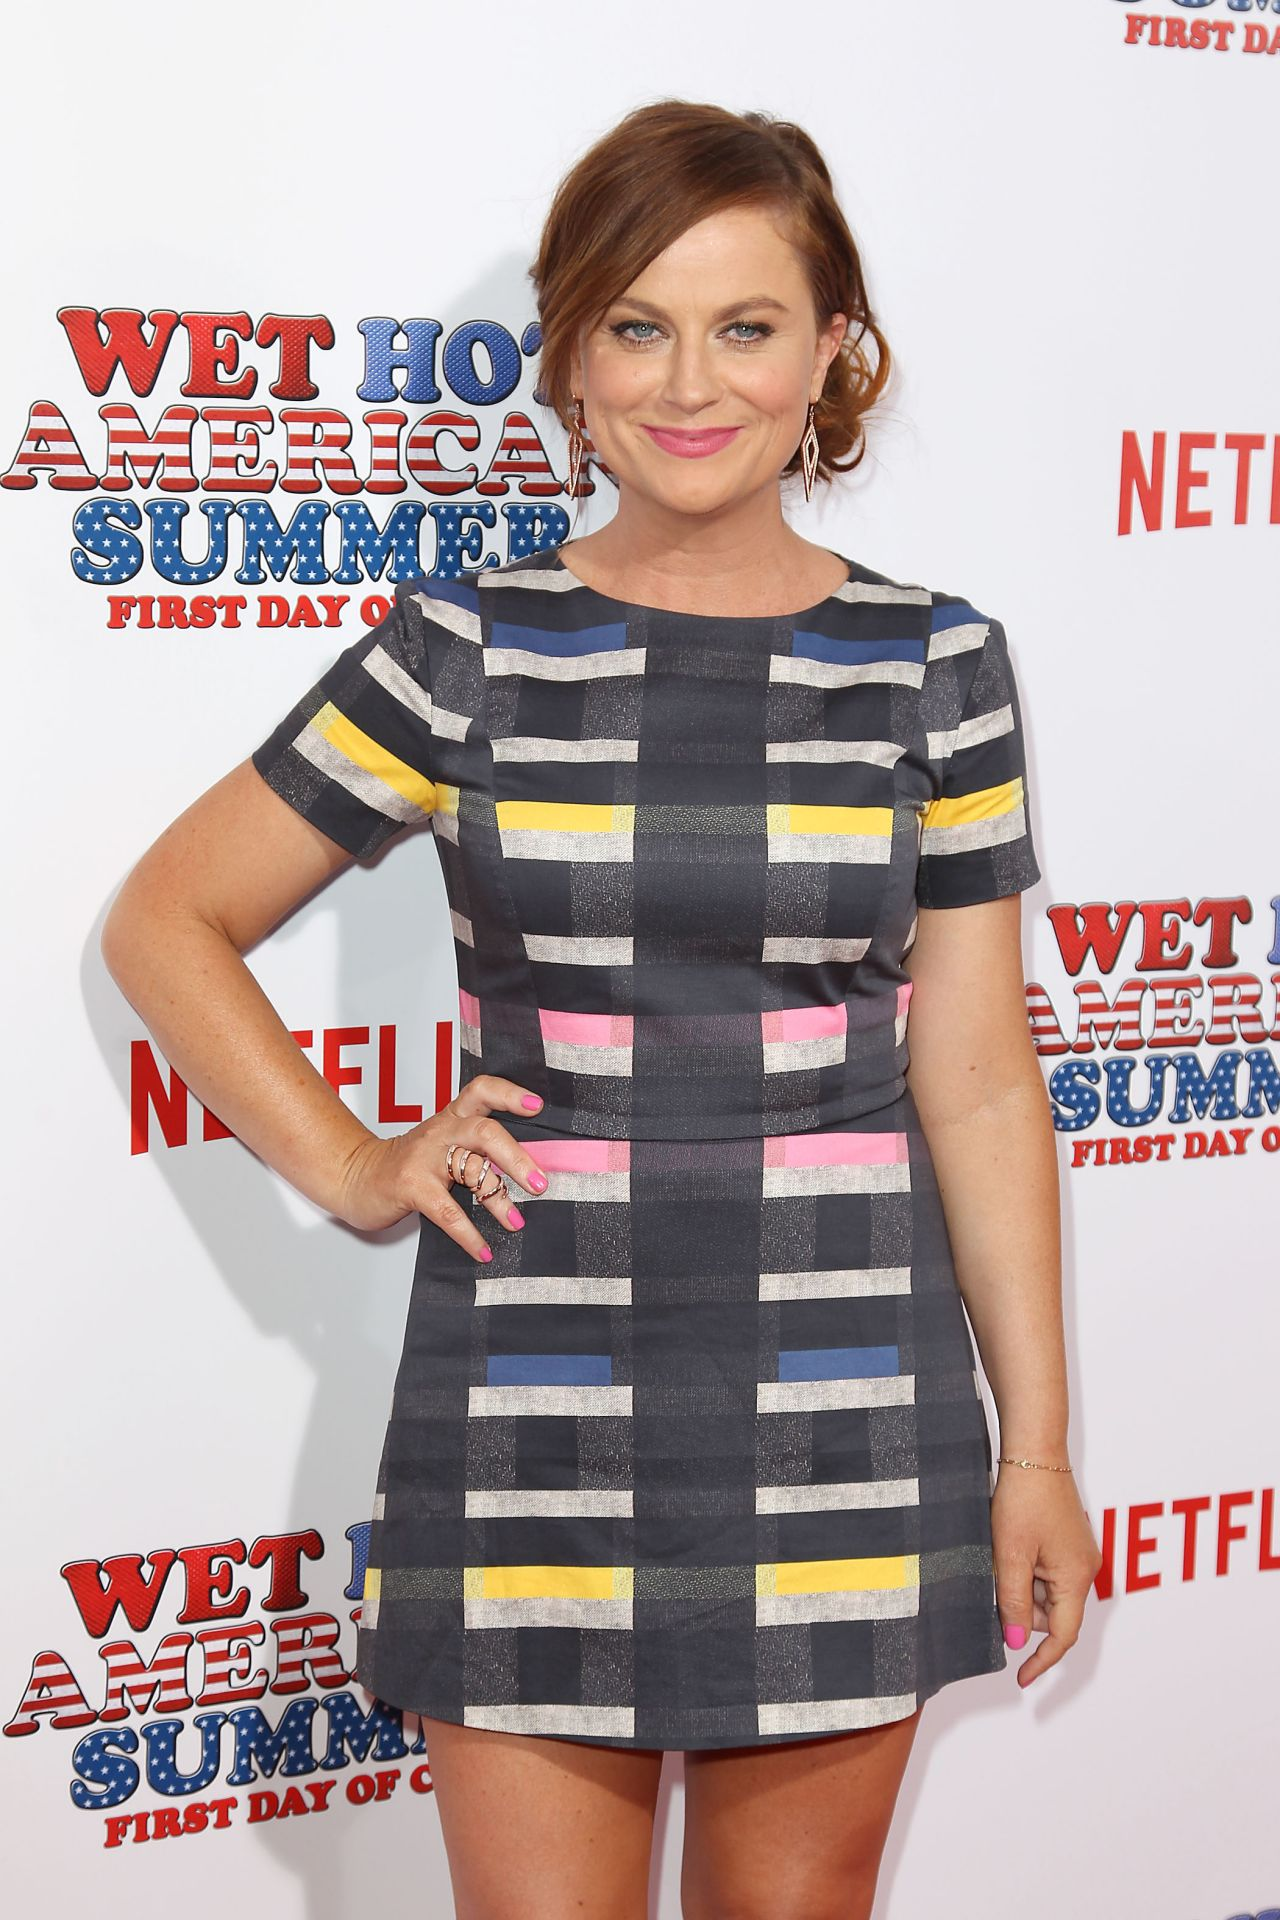 amy-poehler-in-beckley-at-the-wet-hot-american-summer-first-day-of-camp-series-premiere